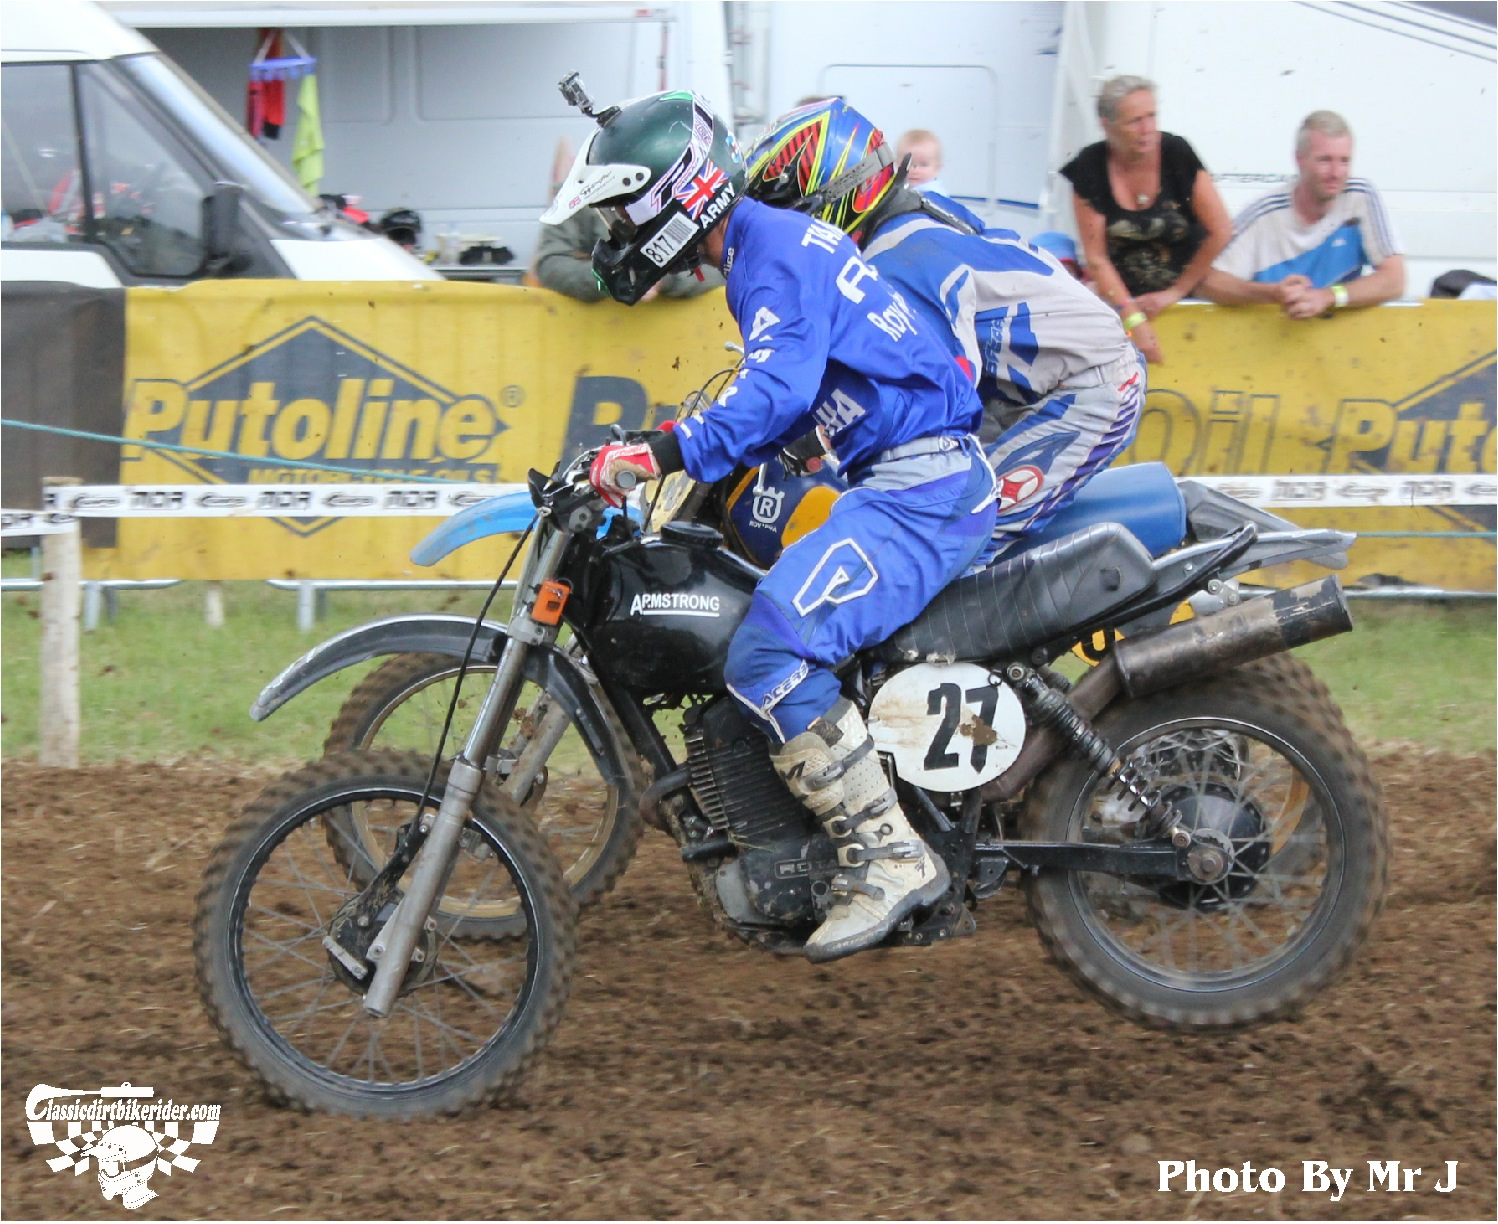 king of the castle 2015 photos Farleigh Castle twinshock motocross classicdirtbikerider.com 34